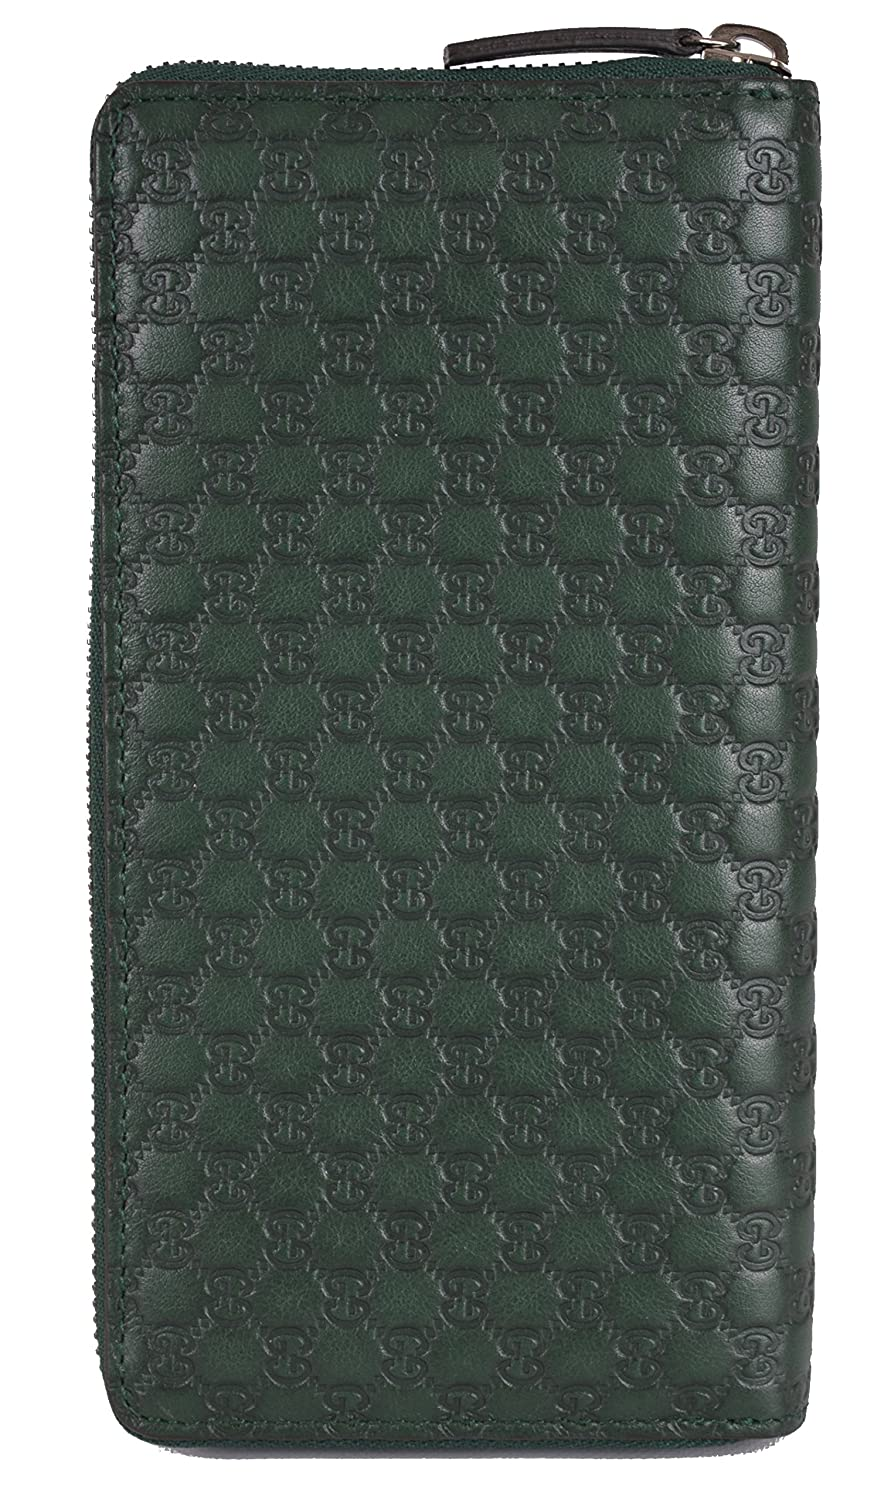 de58c14d7919ad Amazon.com: Gucci Unisex Green Leather Micro GG Guccissima Zip Around Wallet  O/S: Clothing